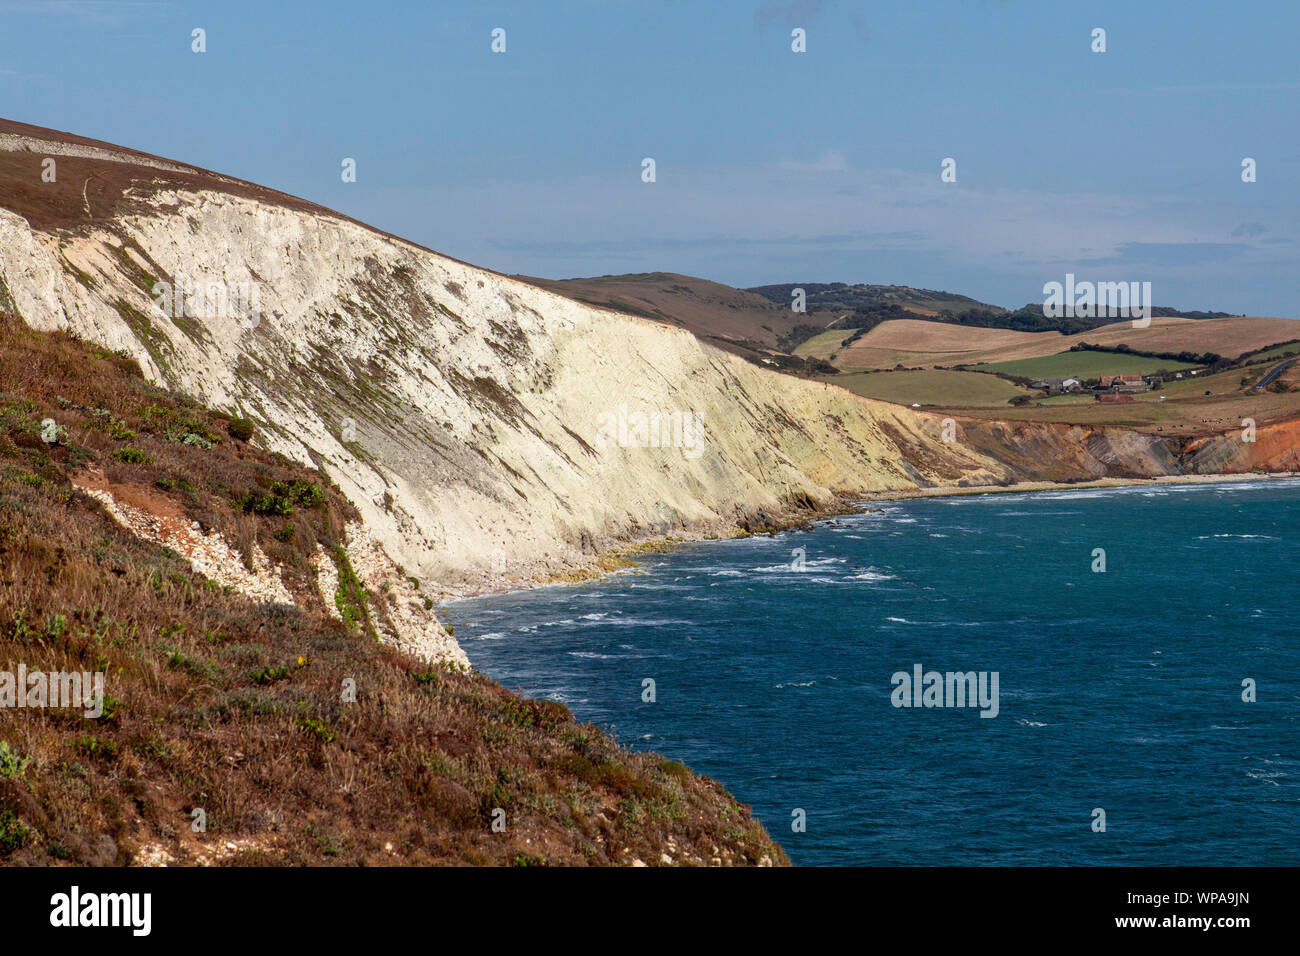 Isle of Wight coastline UK Stock Photo